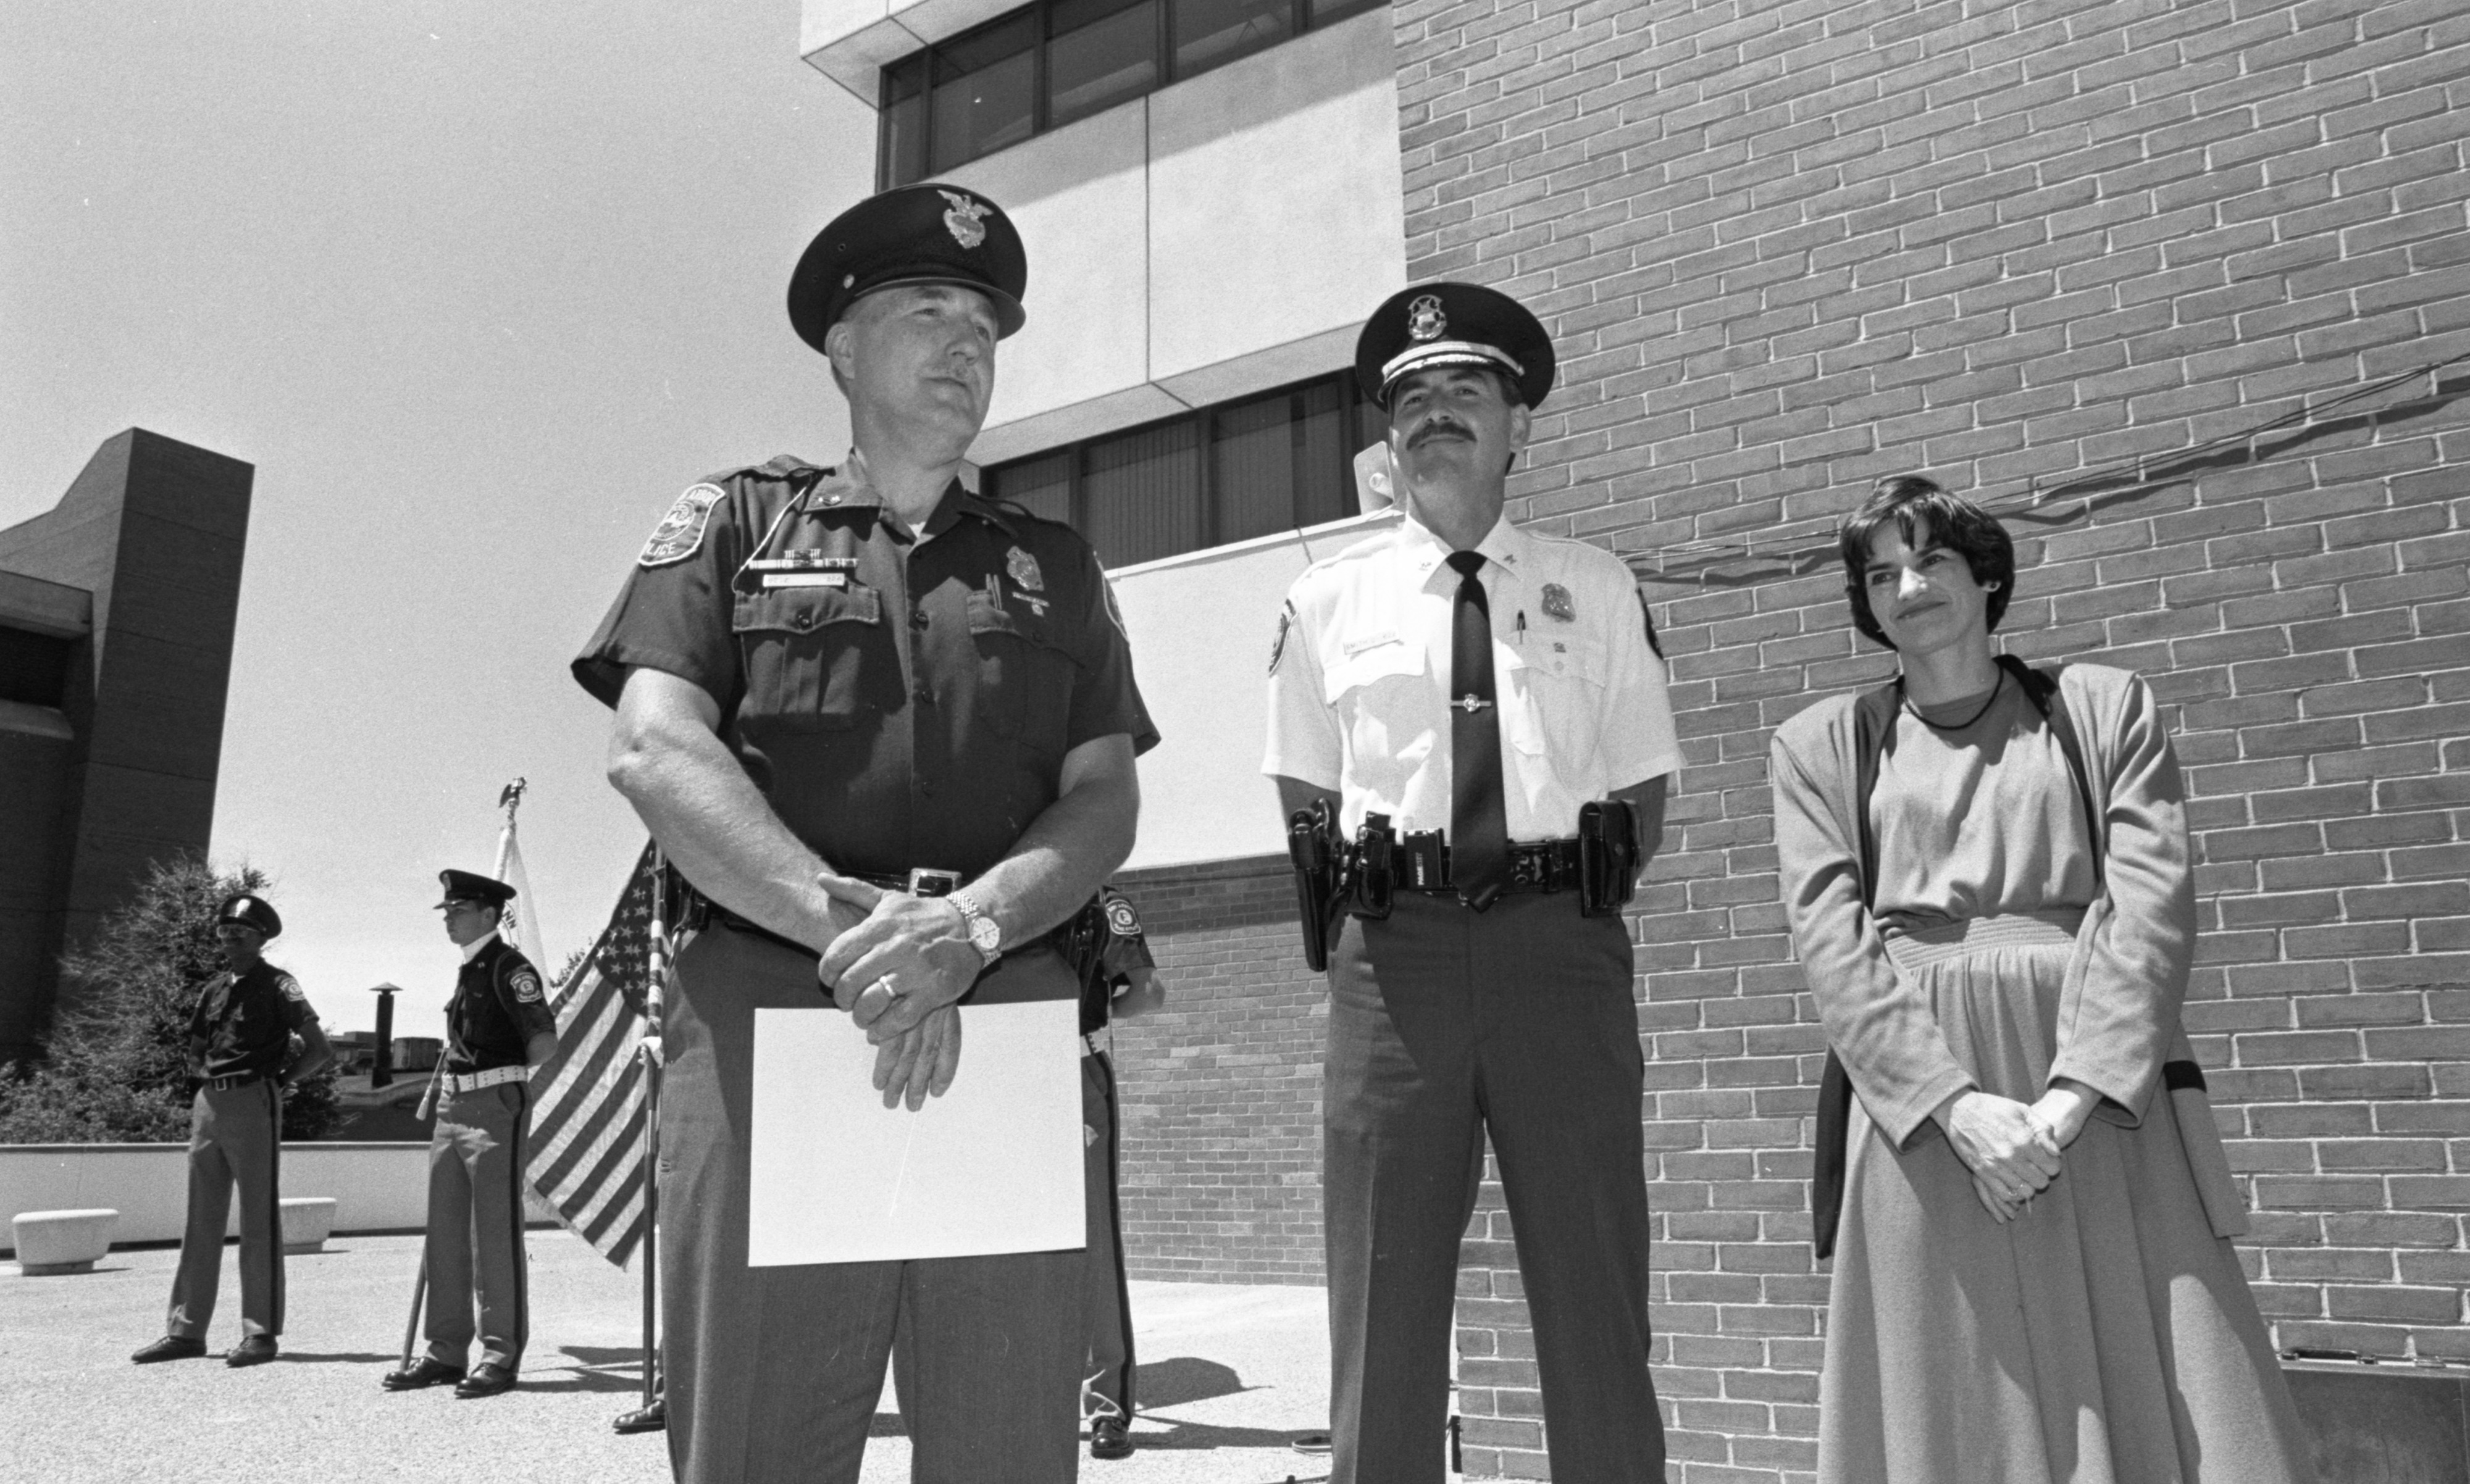 Sergeant Dennis Betz Honored At Ann Arbor Police Department Awards Ceremony, June 1991 image